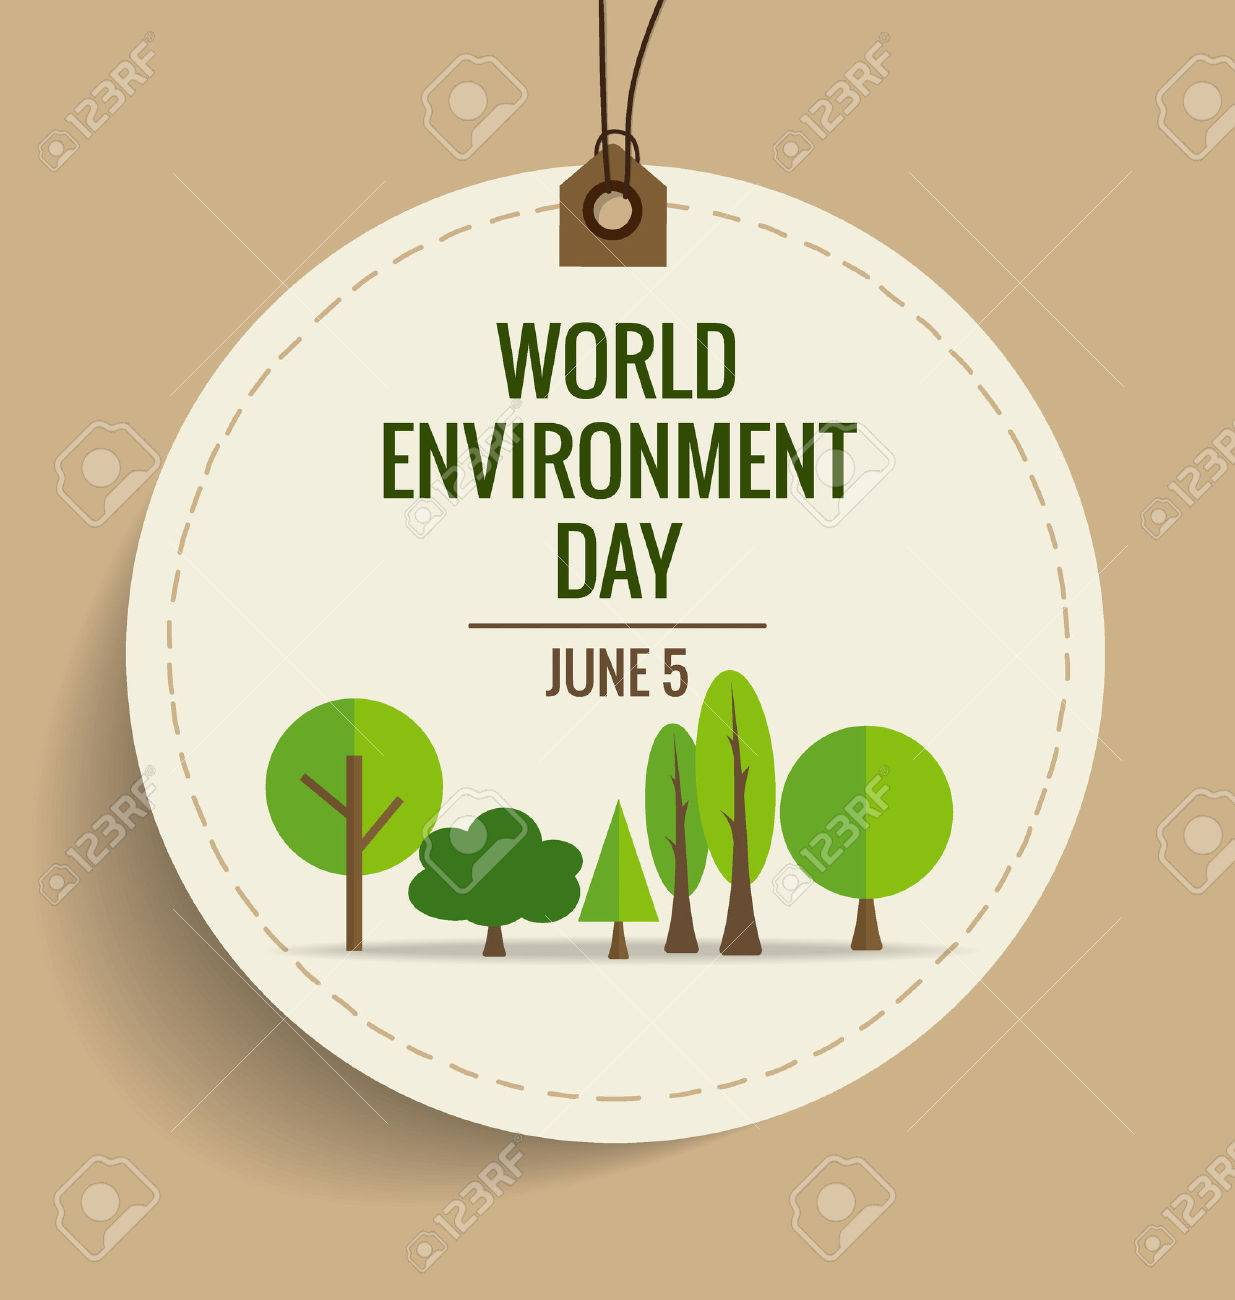 Nature banner. World environment day concept. Vector illustration. - 40878346